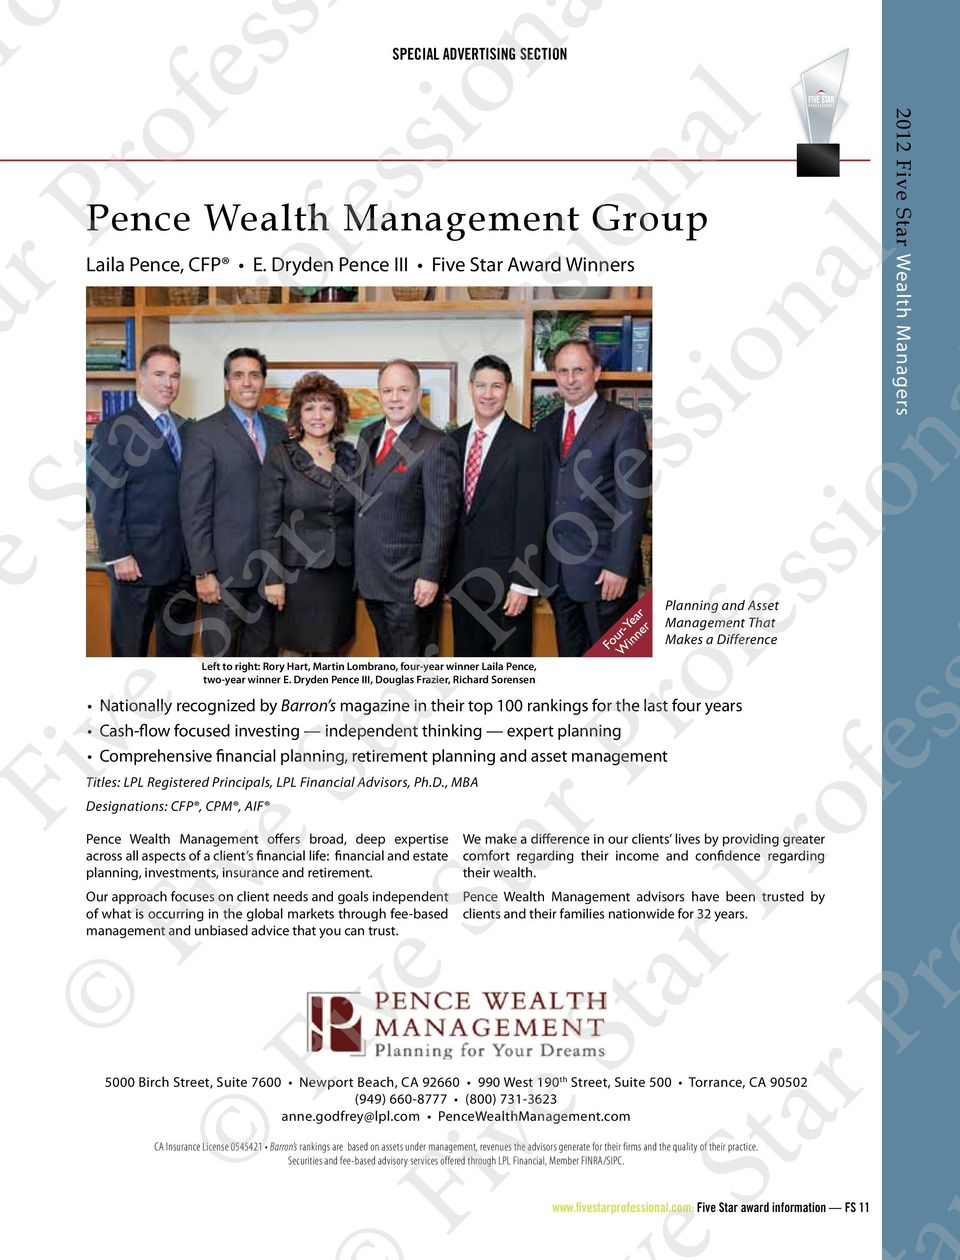 Cash-flow focused investing independent thinking expert planning Comprehensive financial planning, retirement planning and asset management Titles: LPL Registered Principals, LPL Financial Advisors,